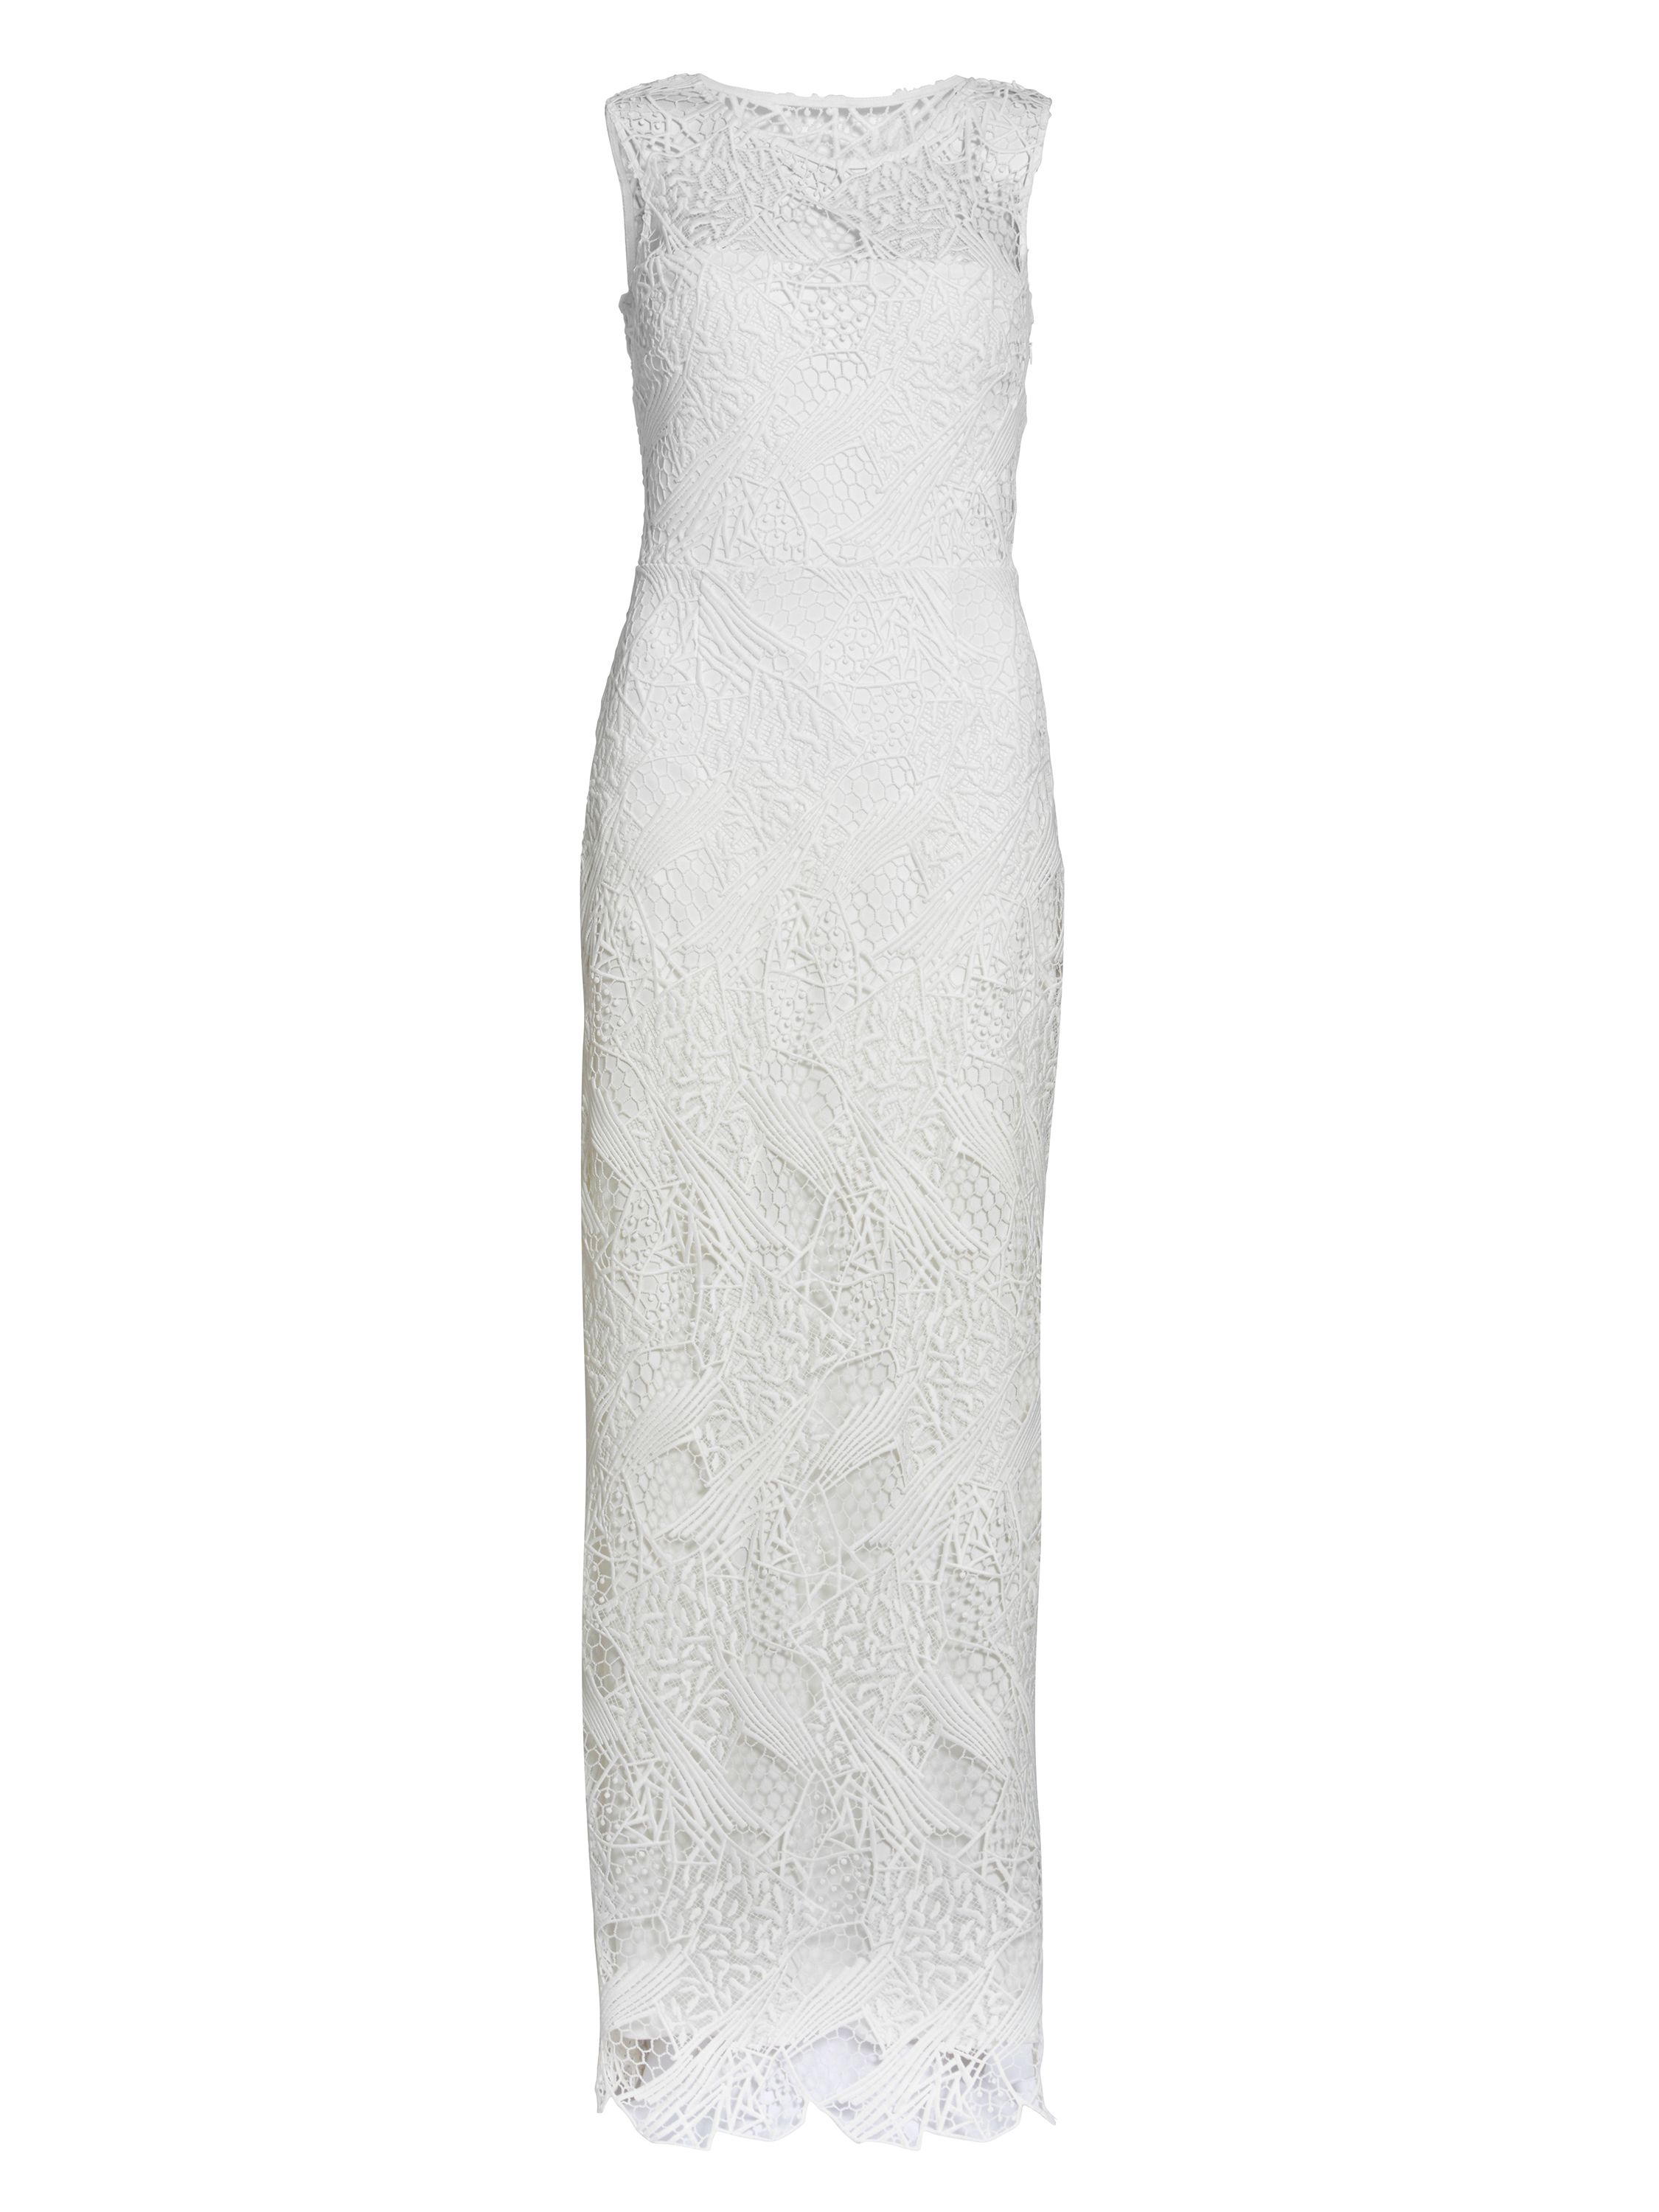 Gina Bacconi Abstract Quipure Maxi Dress, White